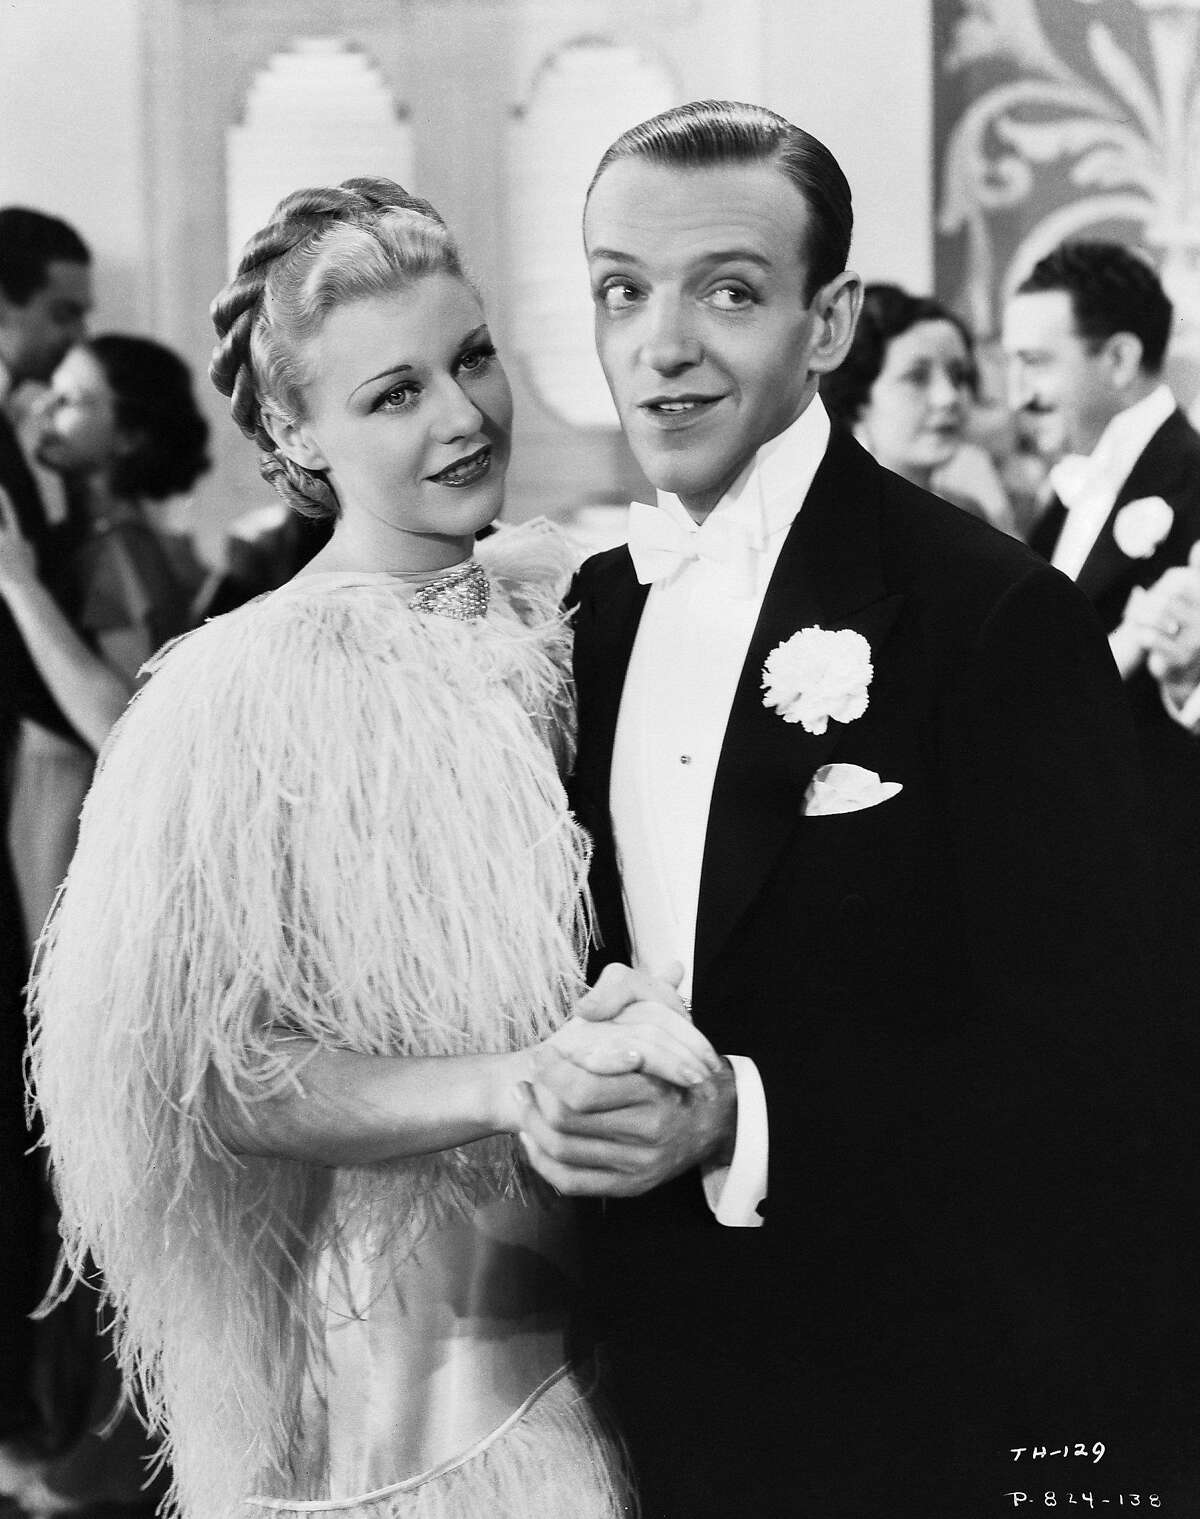 Fred Astaire (1899 - 1987) and Ginger Rogers (1911 - 1995) in a scene from the comedy musical 'Top Hat', directed by Mark Sandrich, 1935. (Photo via John Kobal Foundation/Hulton Archive/Getty Images)